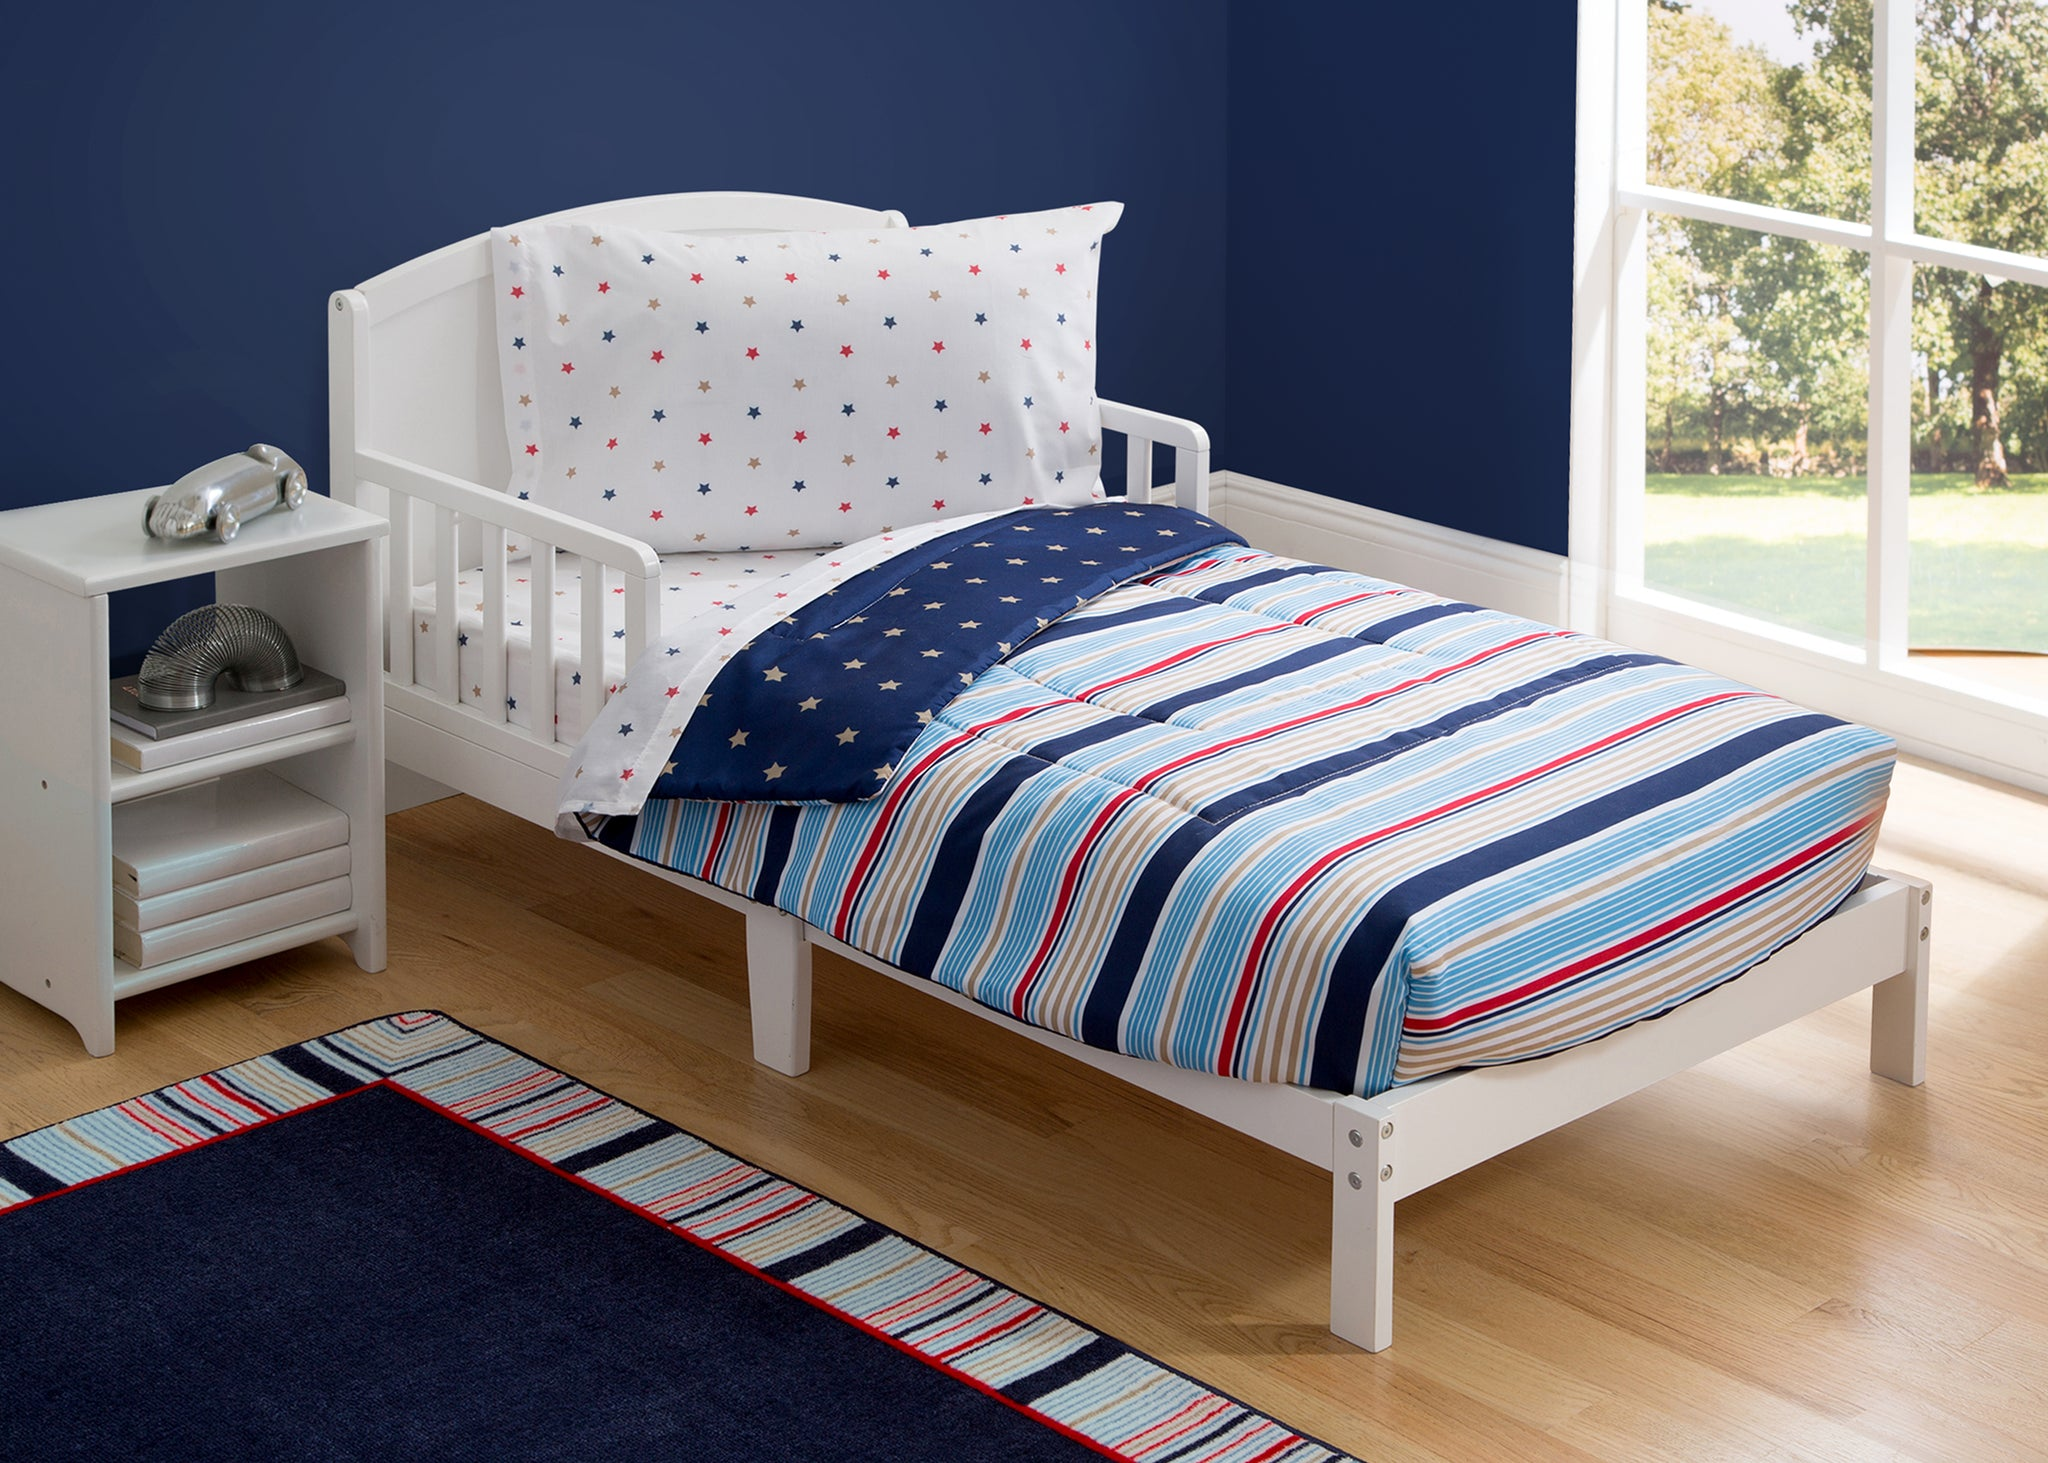 Boy 4-Piece Toddler Bedding Set, Stars and Stripes (2200) a1a